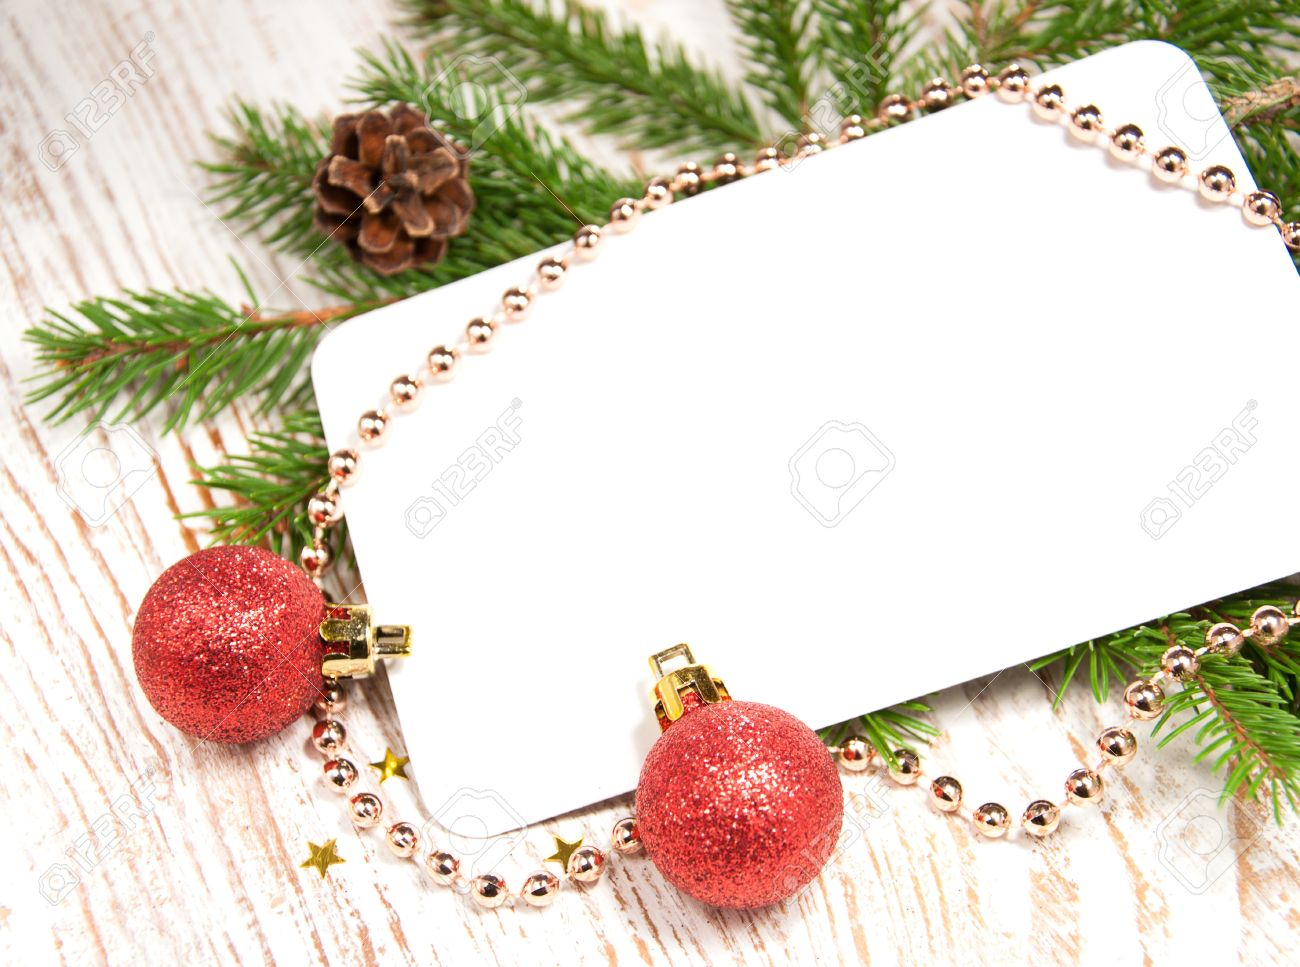 blank christmas card or invitation with decorations